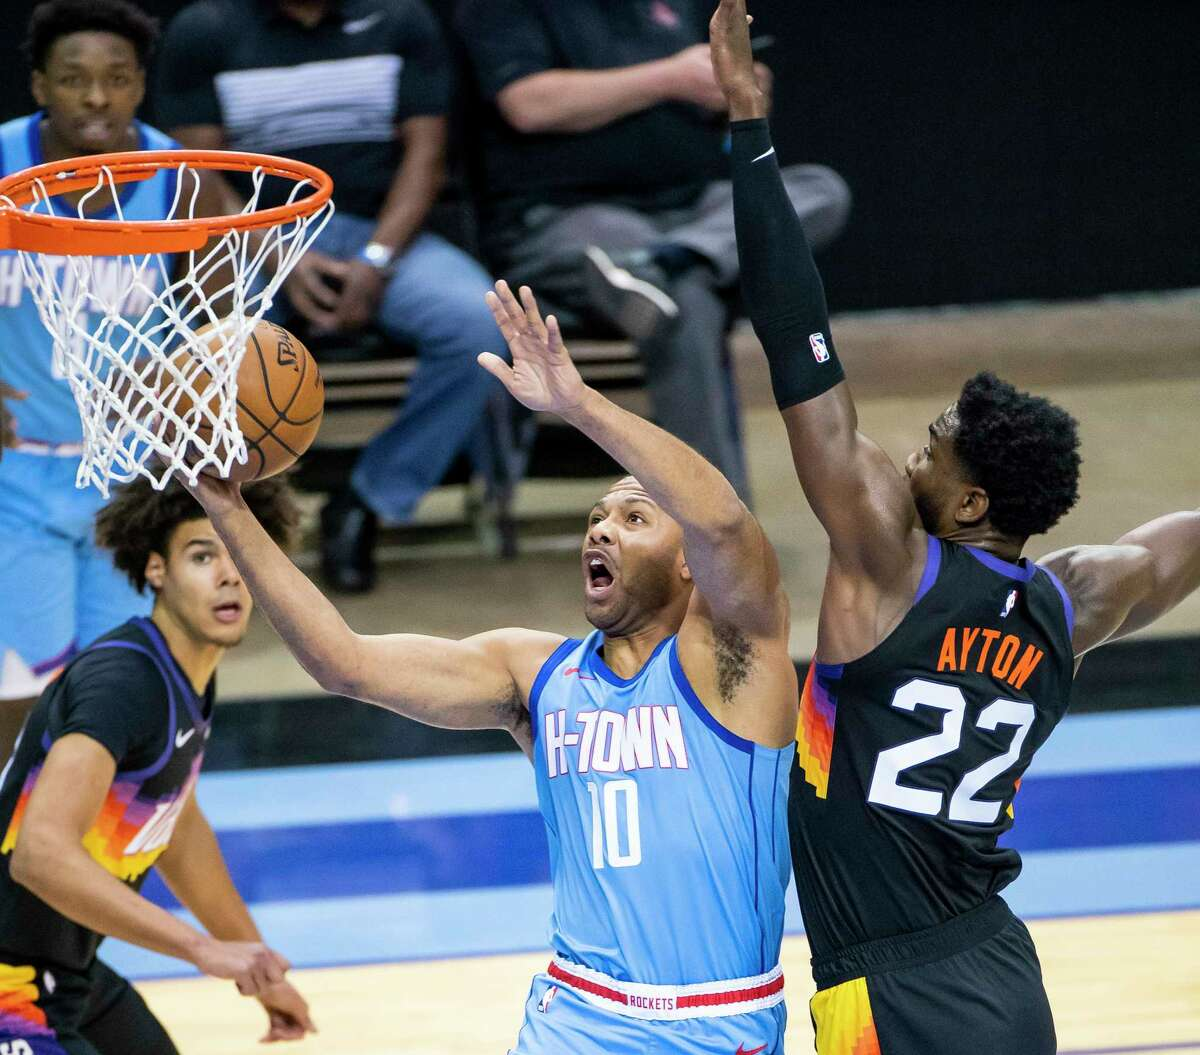 Houston Rockets guard Eric Gordon (10) shoots around Phoenix Suns center Deandre Ayton (22) during the first quarter of an NBA game between the Houston Rockets and Phoenix Suns on Wednesday, Jan. 20, 2021, at Toyota Center in Houston.